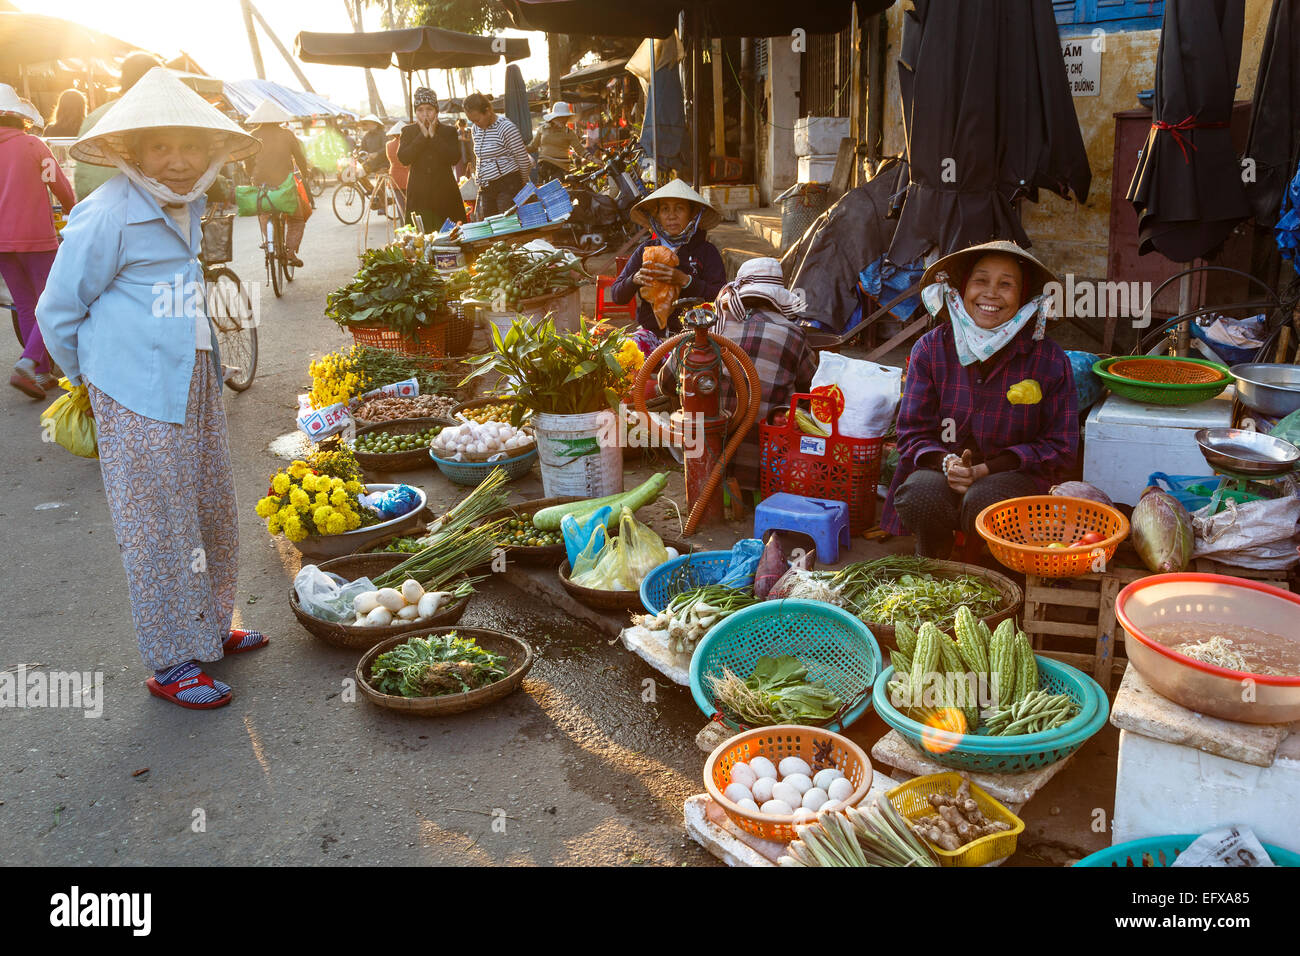 Fruits and vegetables vendors at the Central Market, Hoi An, Vietnam. - Stock Image